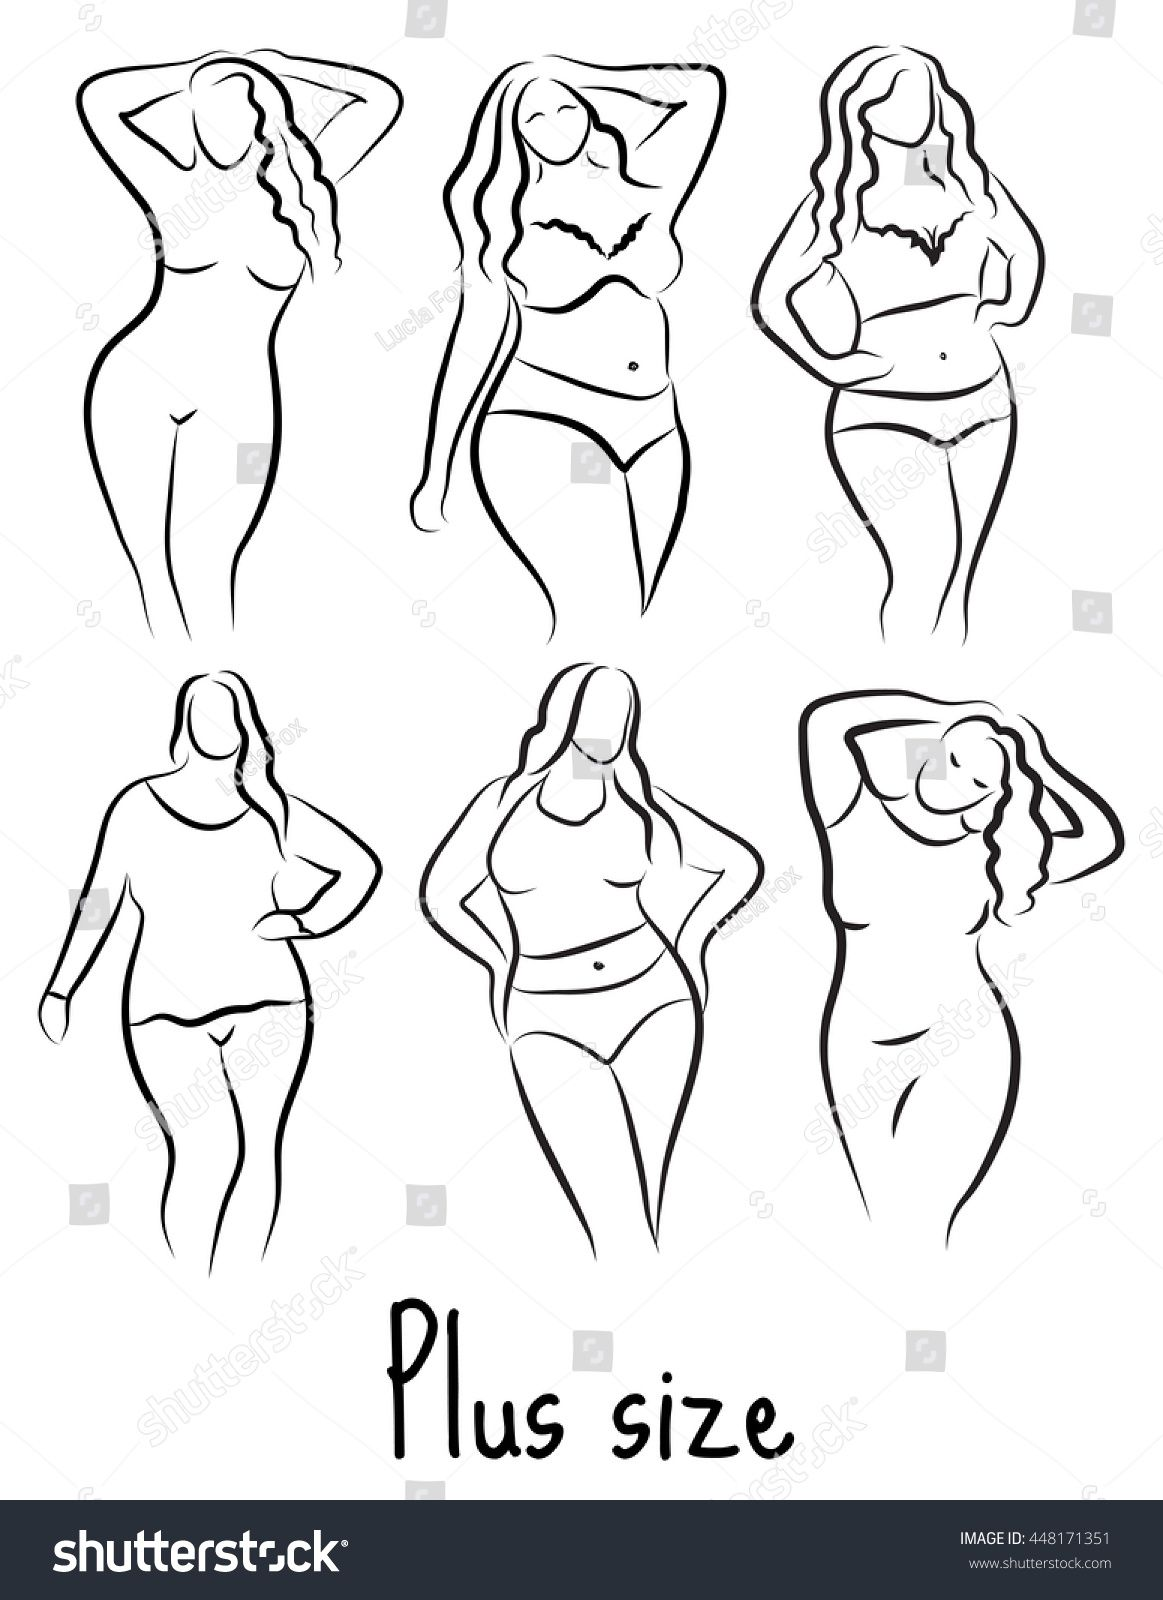 Photo of Set Girl Silhouette Sketch Plus Size Stock Vector (Royalty Free) 448171351